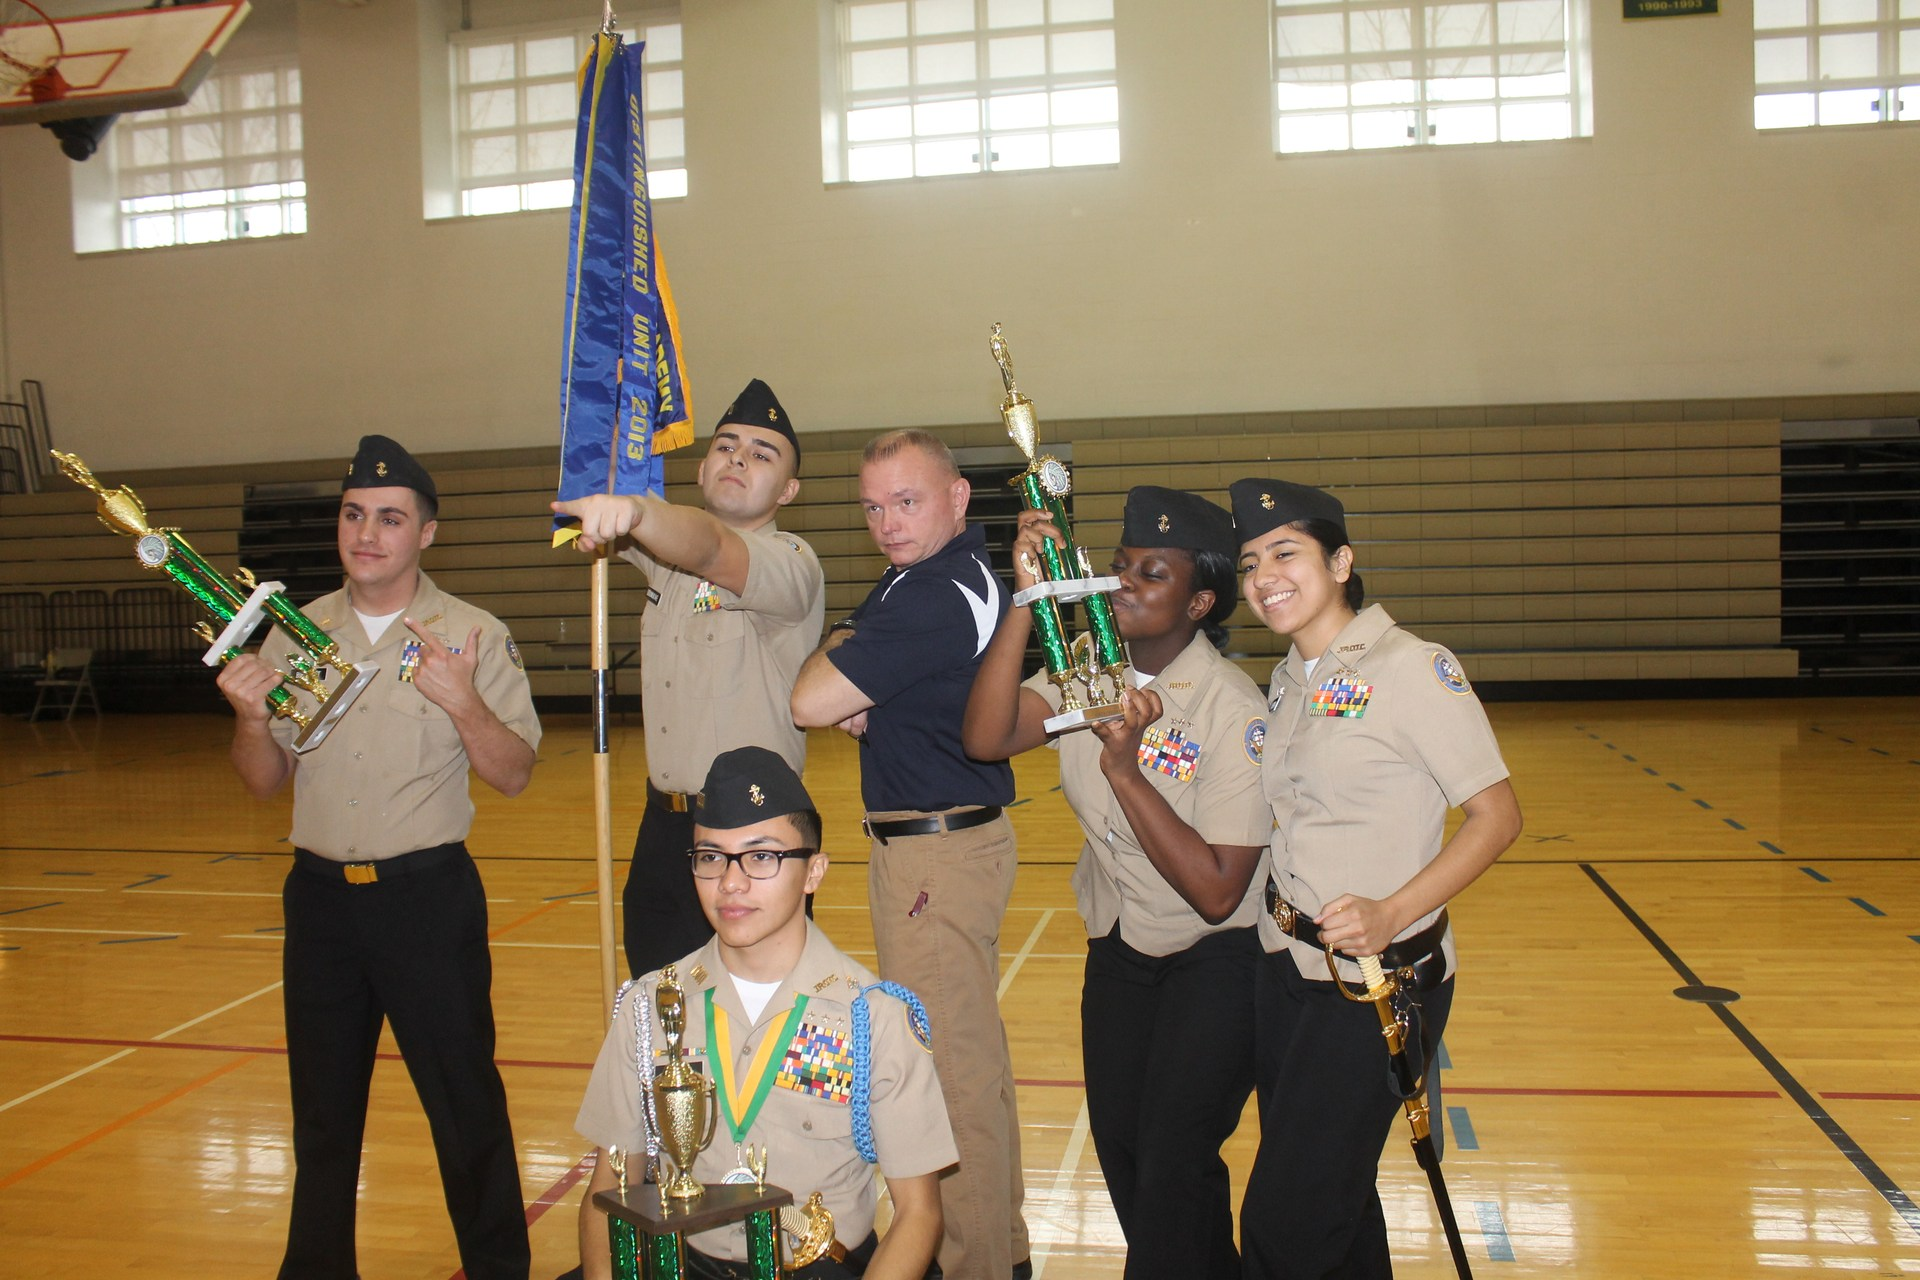 showing off our drill team and color guard trophies